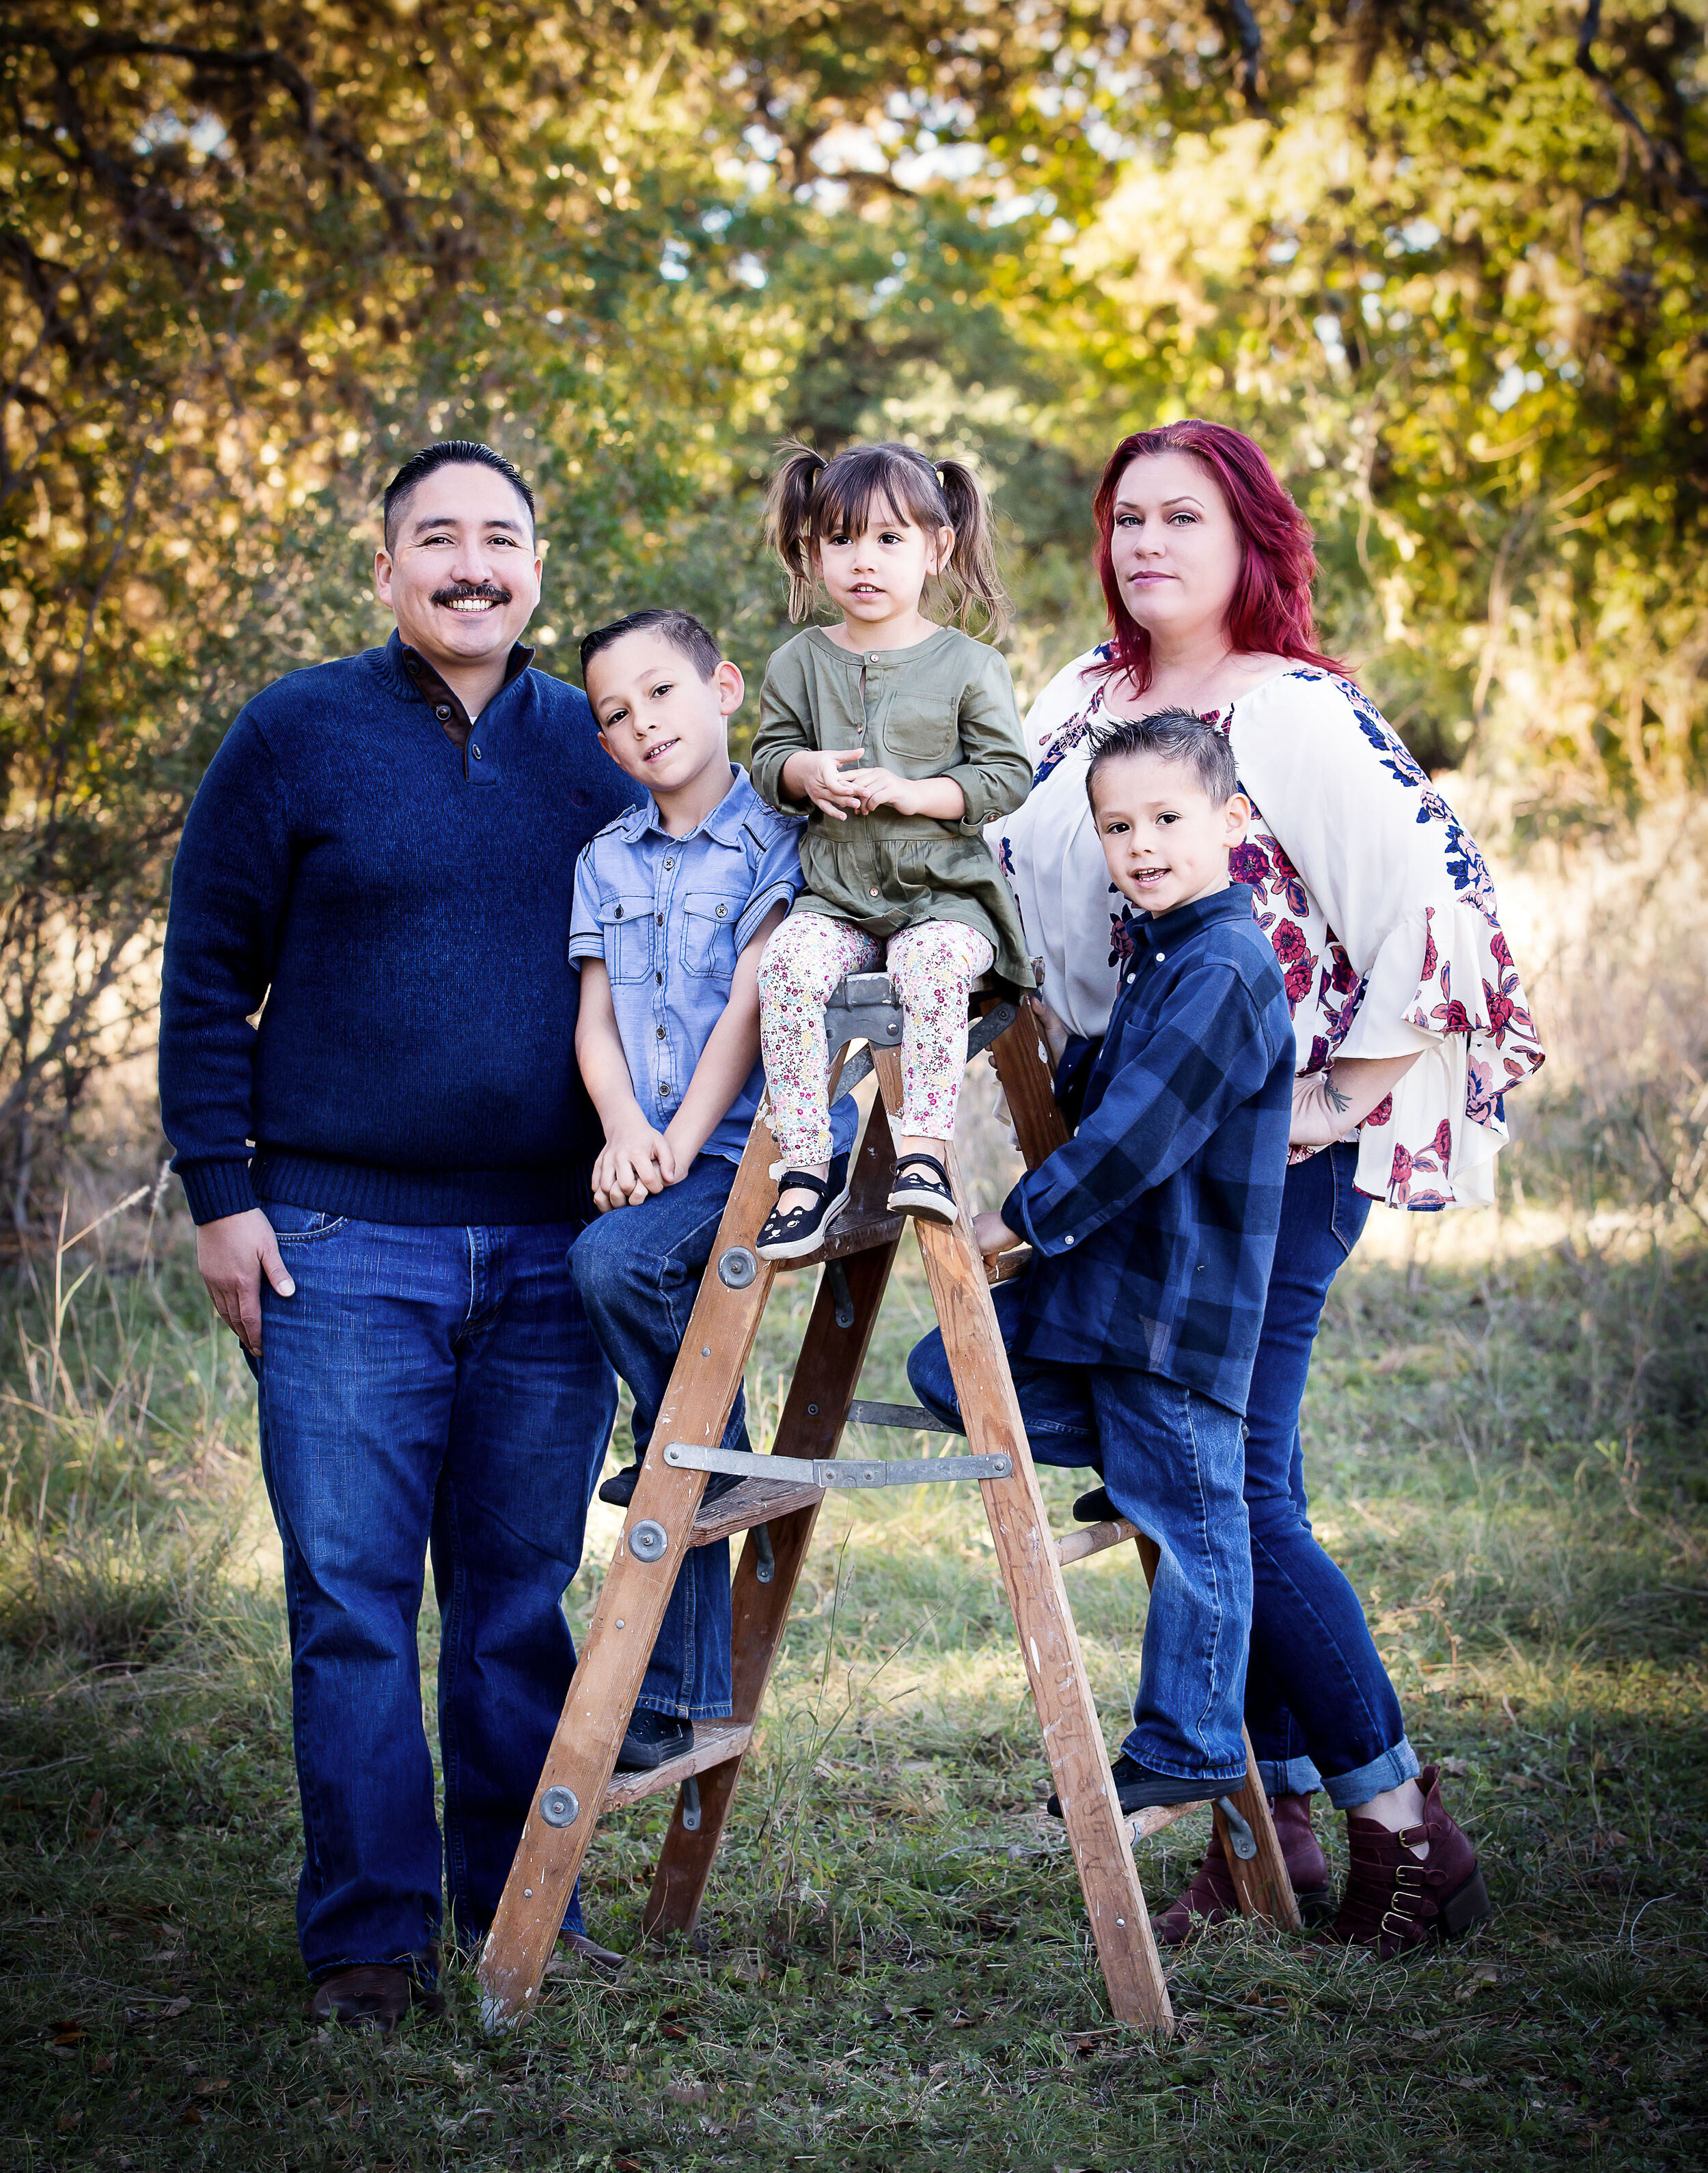 As a portrait photographer, there is nothing that excites me more than capturing genuine moments between people. I am a full service portrait photographer who specializes in newborn and child photography, which allows me to shoot emotion-filled images between parents and their children and the authentic laughter that occurs between kids. -